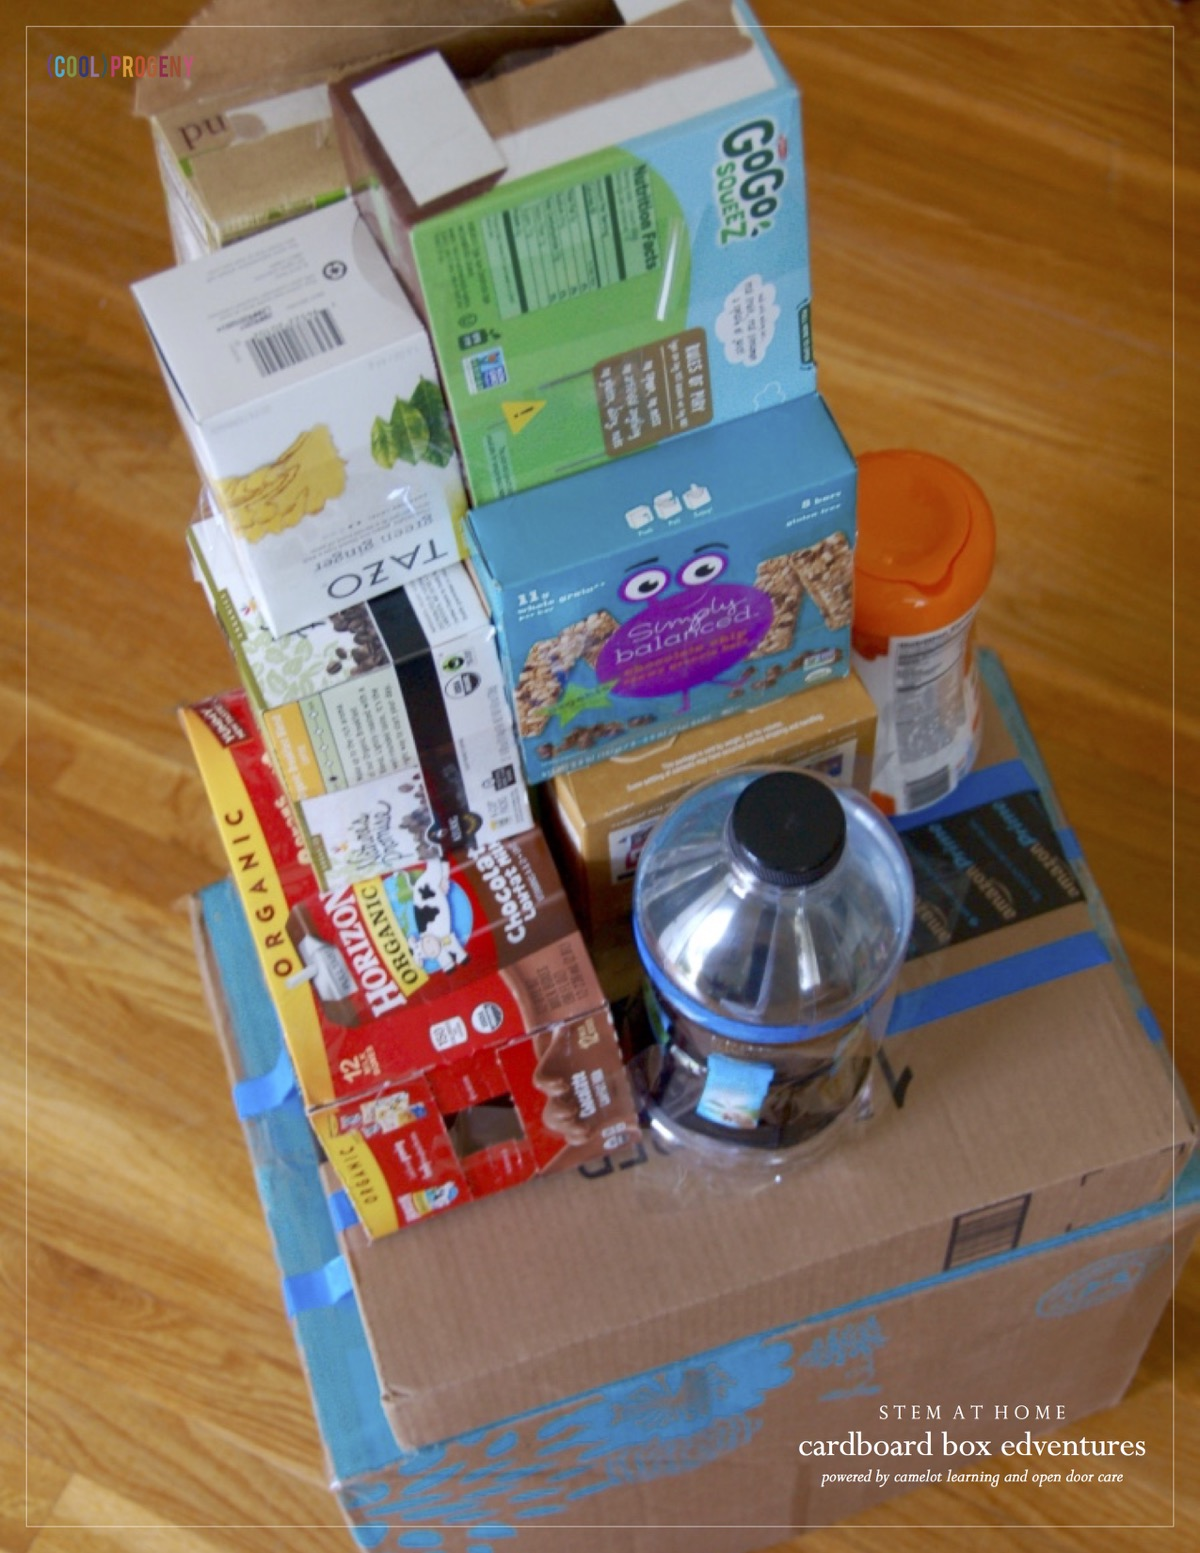 STEM AT HOME: 3 Cardboard Box Edventures - (cool) progeny